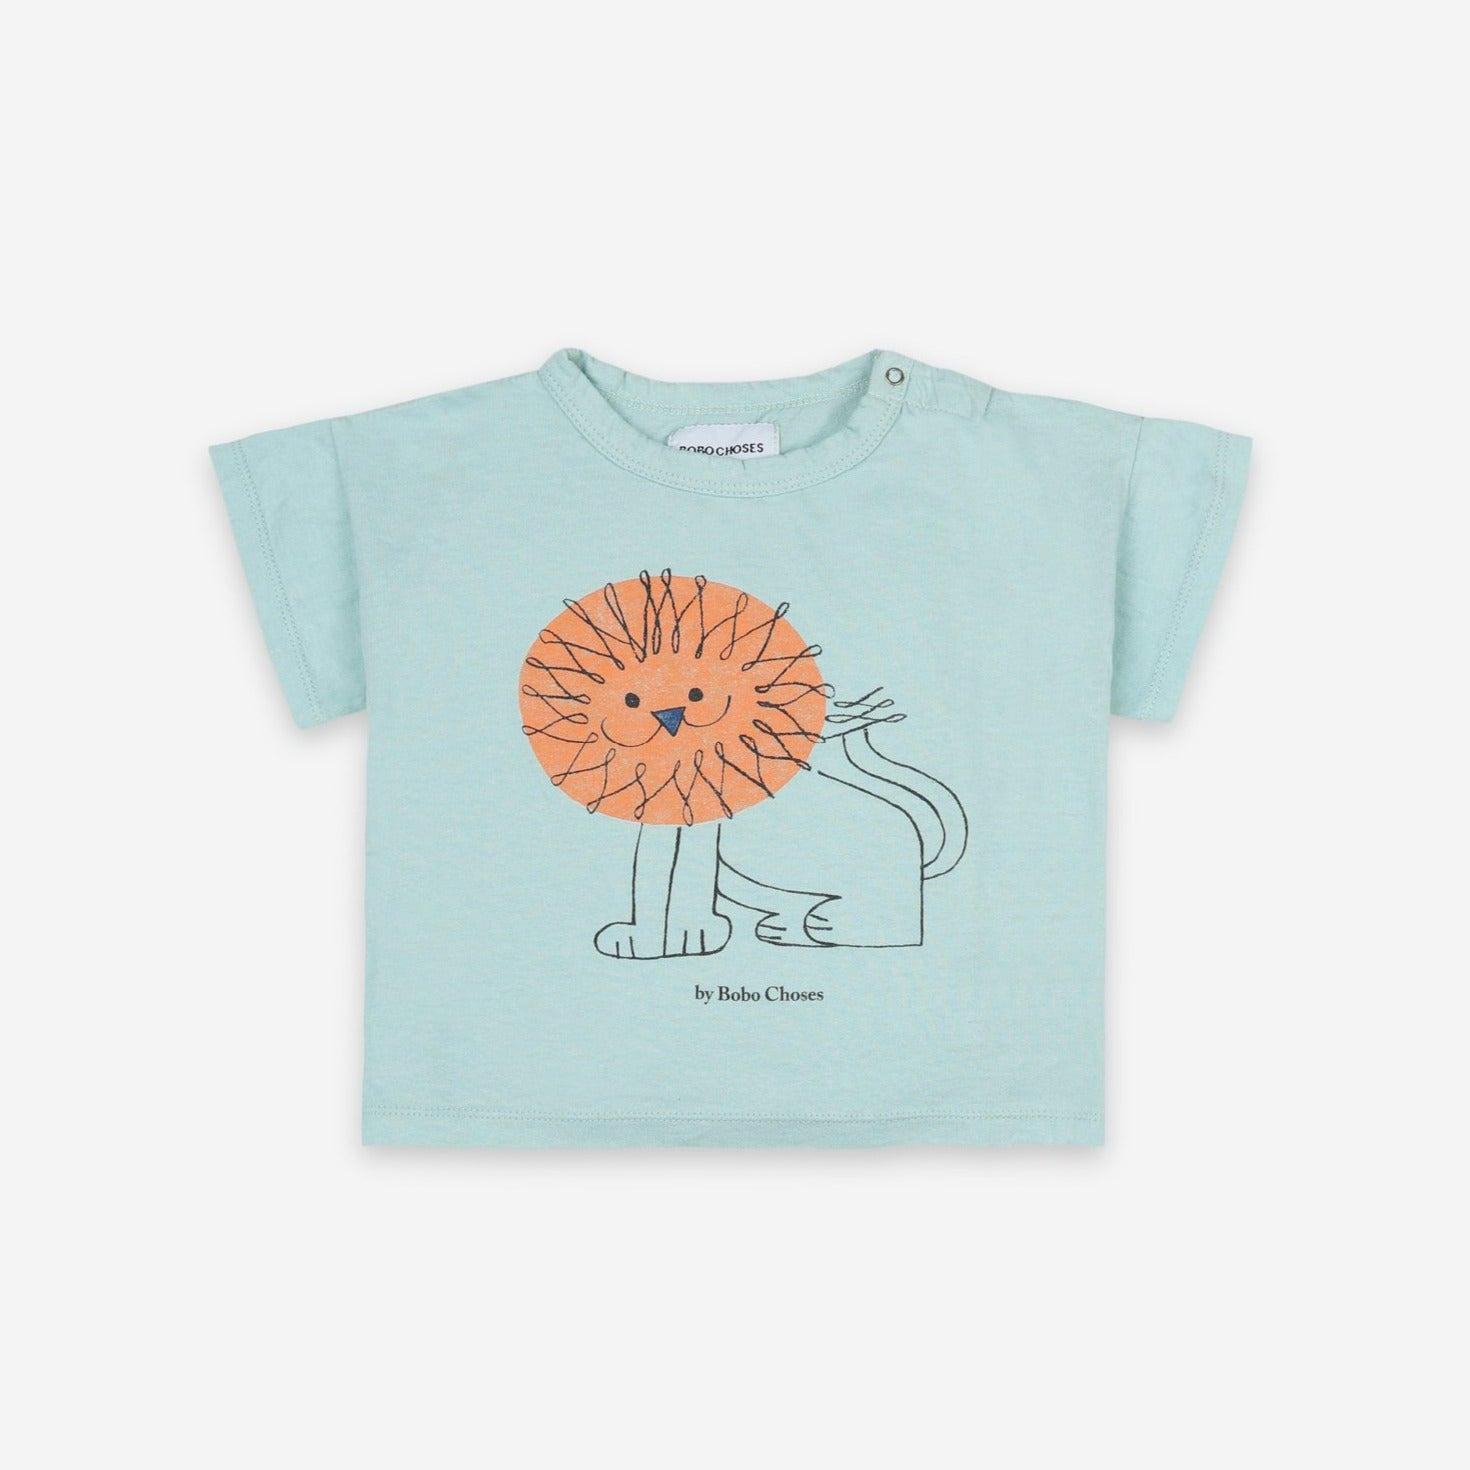 Bobo Choses pet a lion baby tee, gossamer green